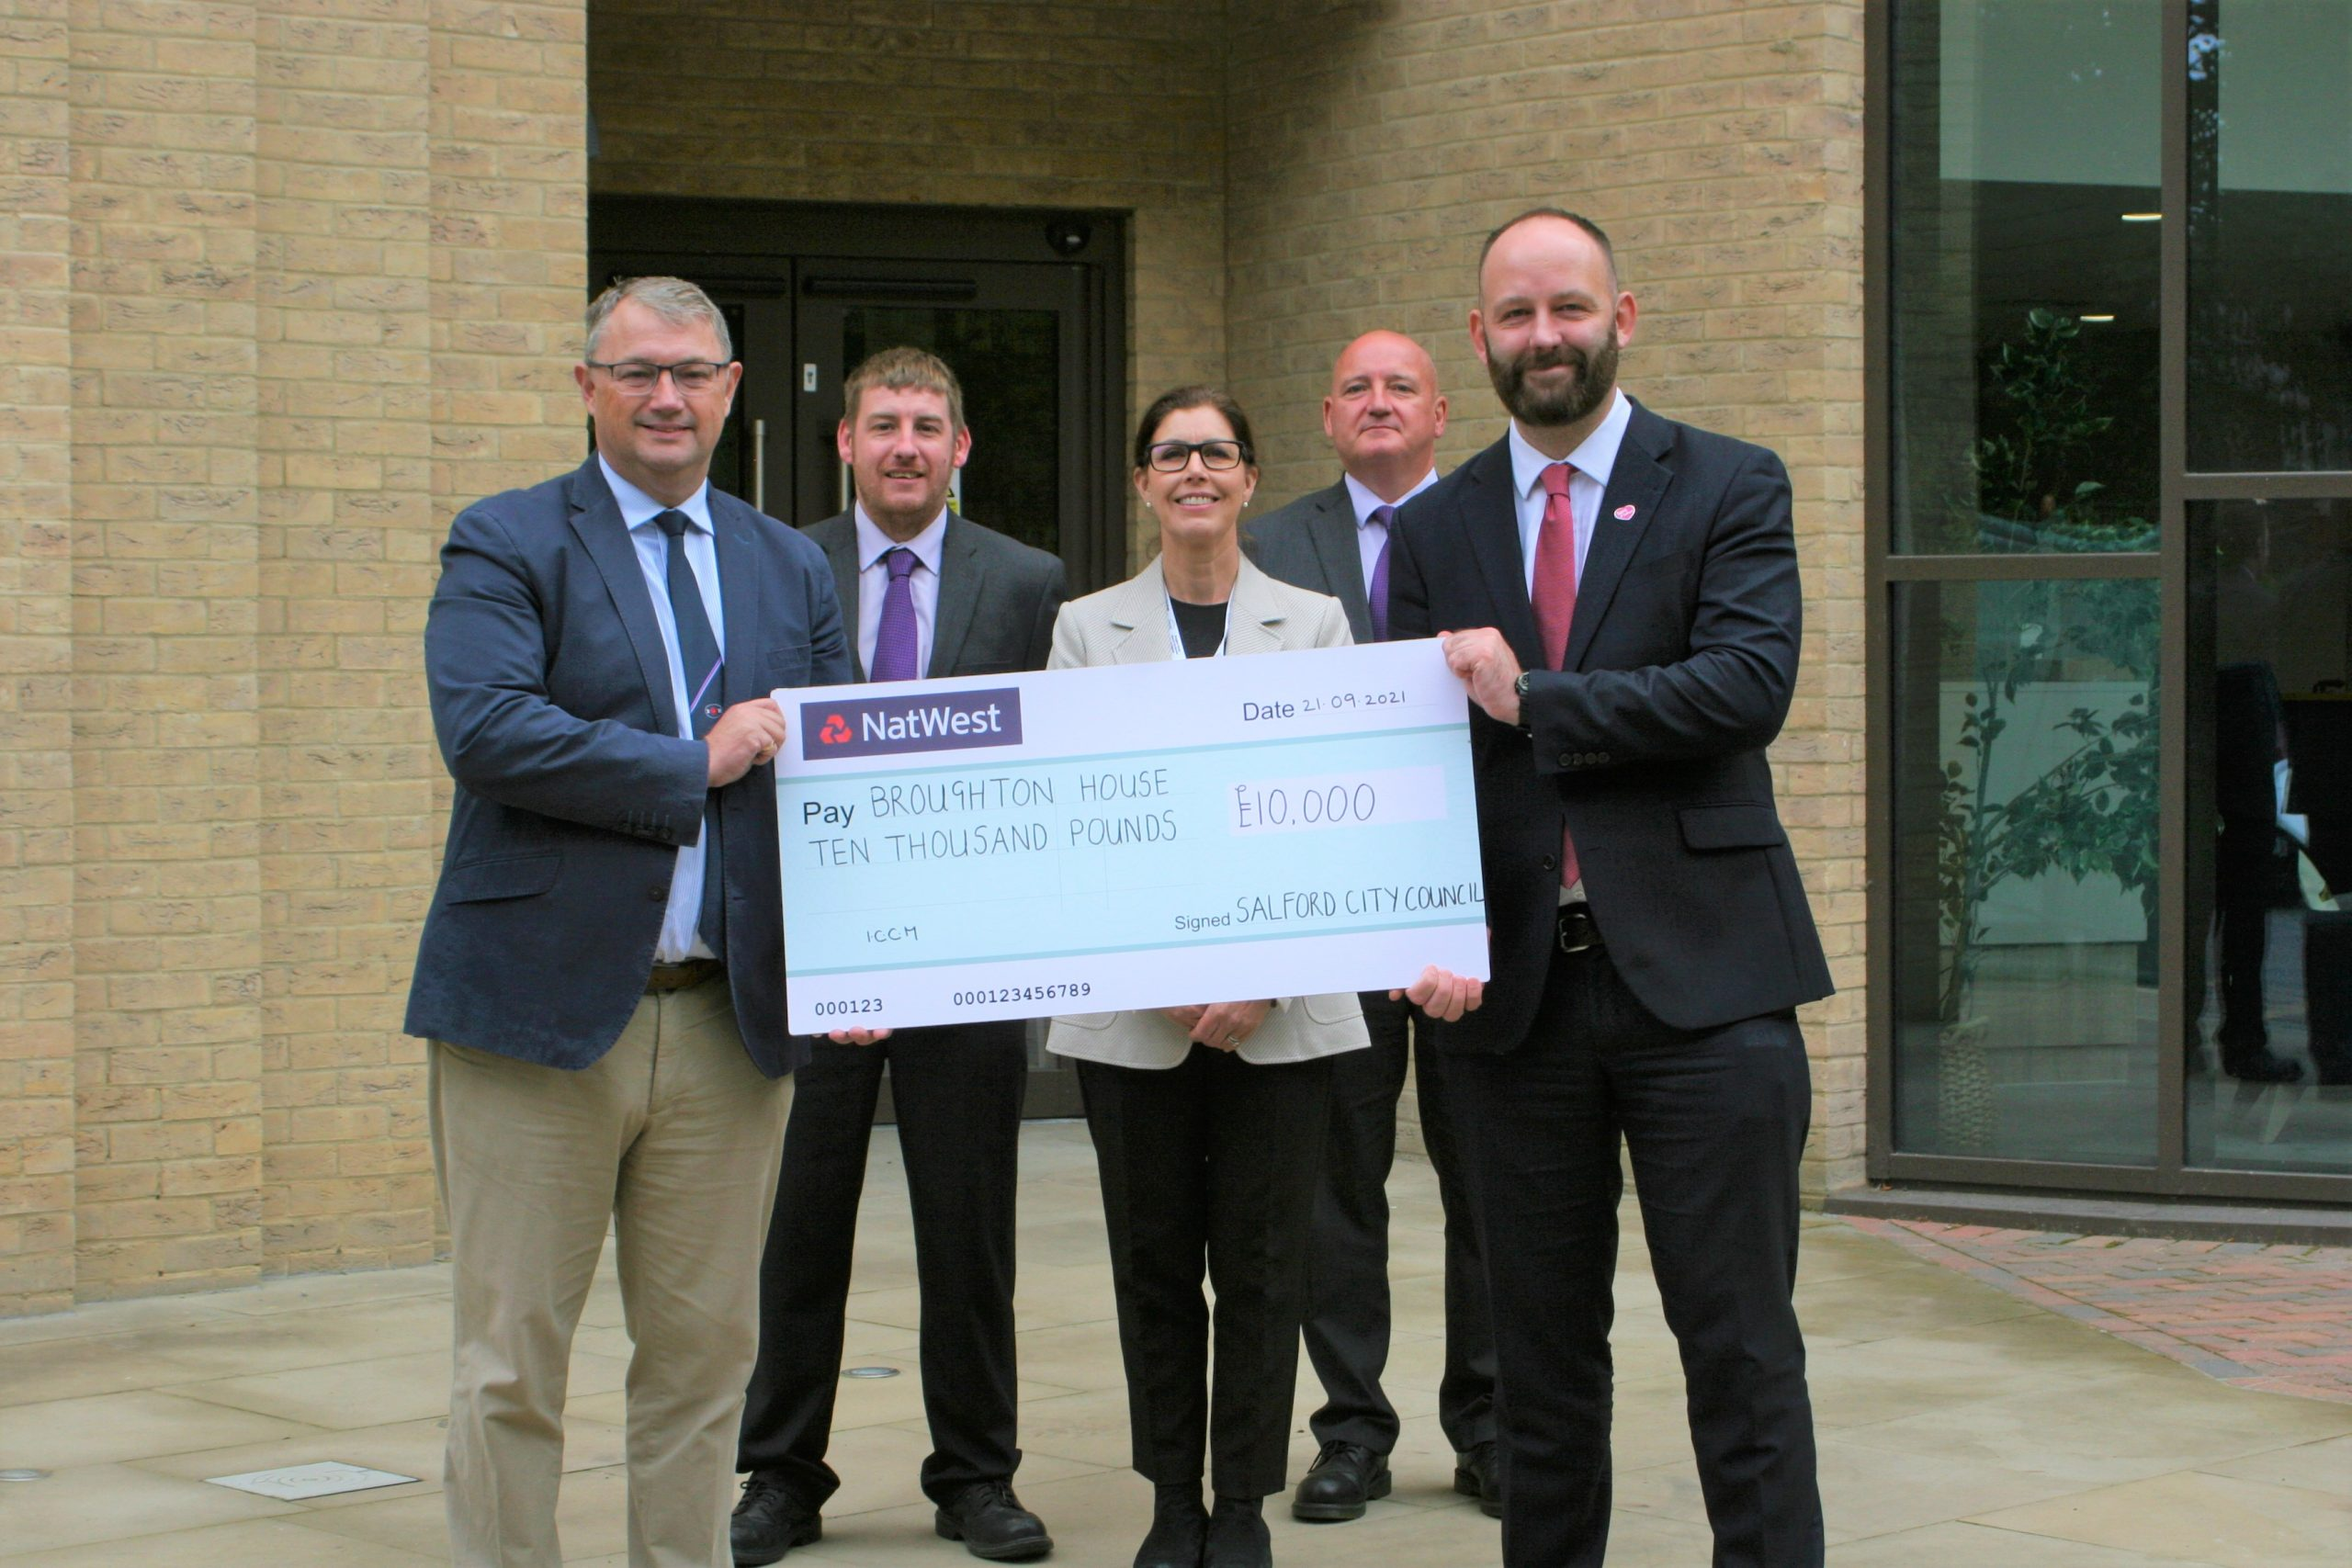 Salford Mayor Paul Dennett gives £10,000 cheque to Broughton House